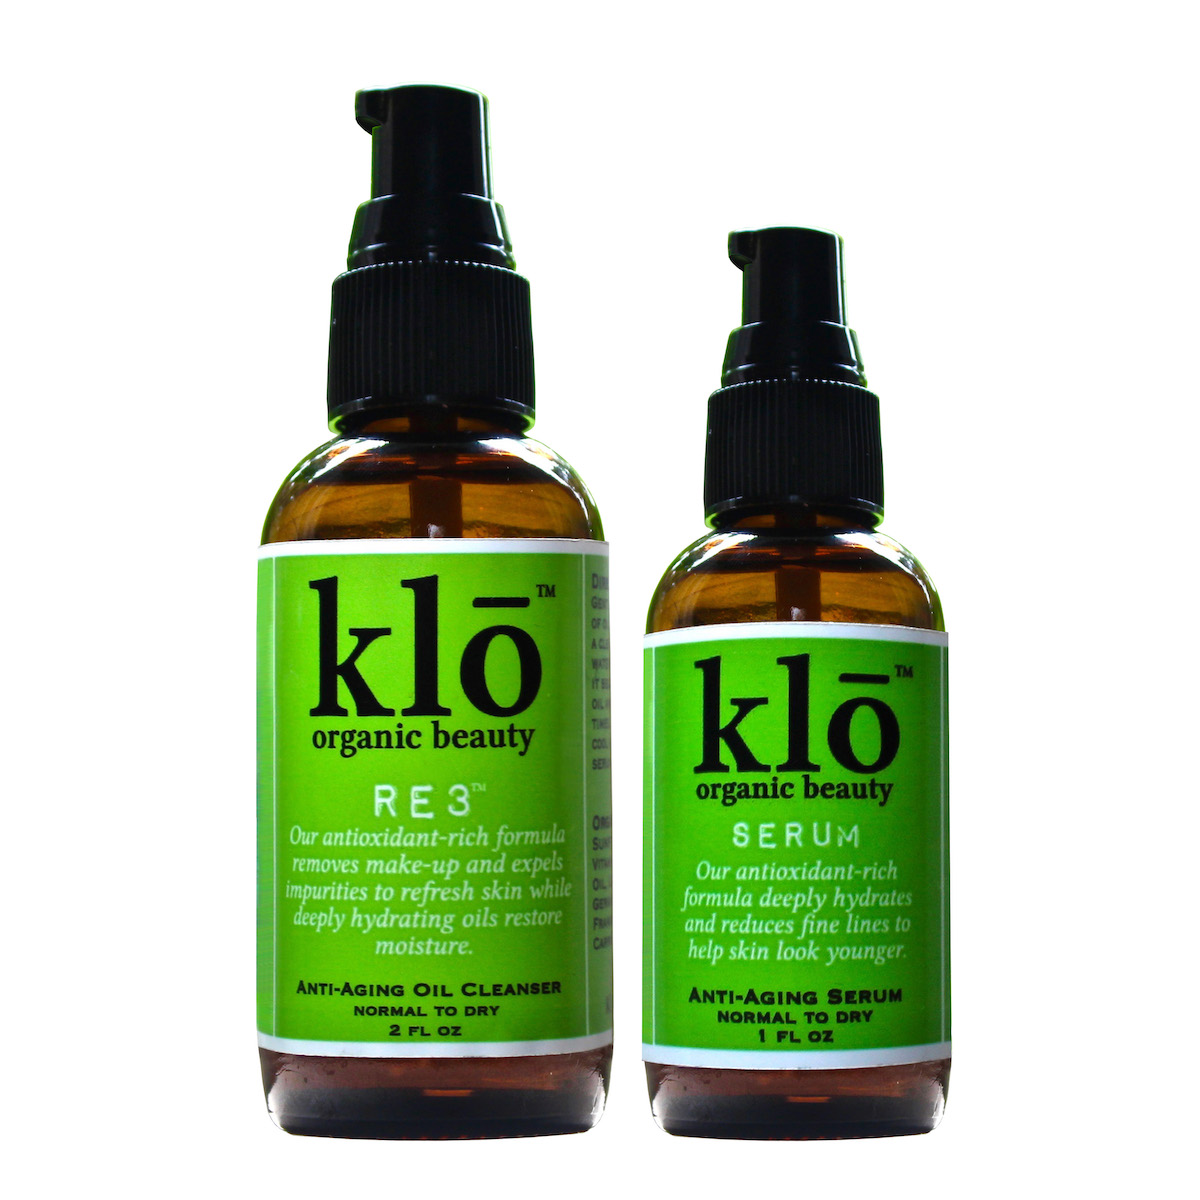 Organic oil cleanser and serum duo